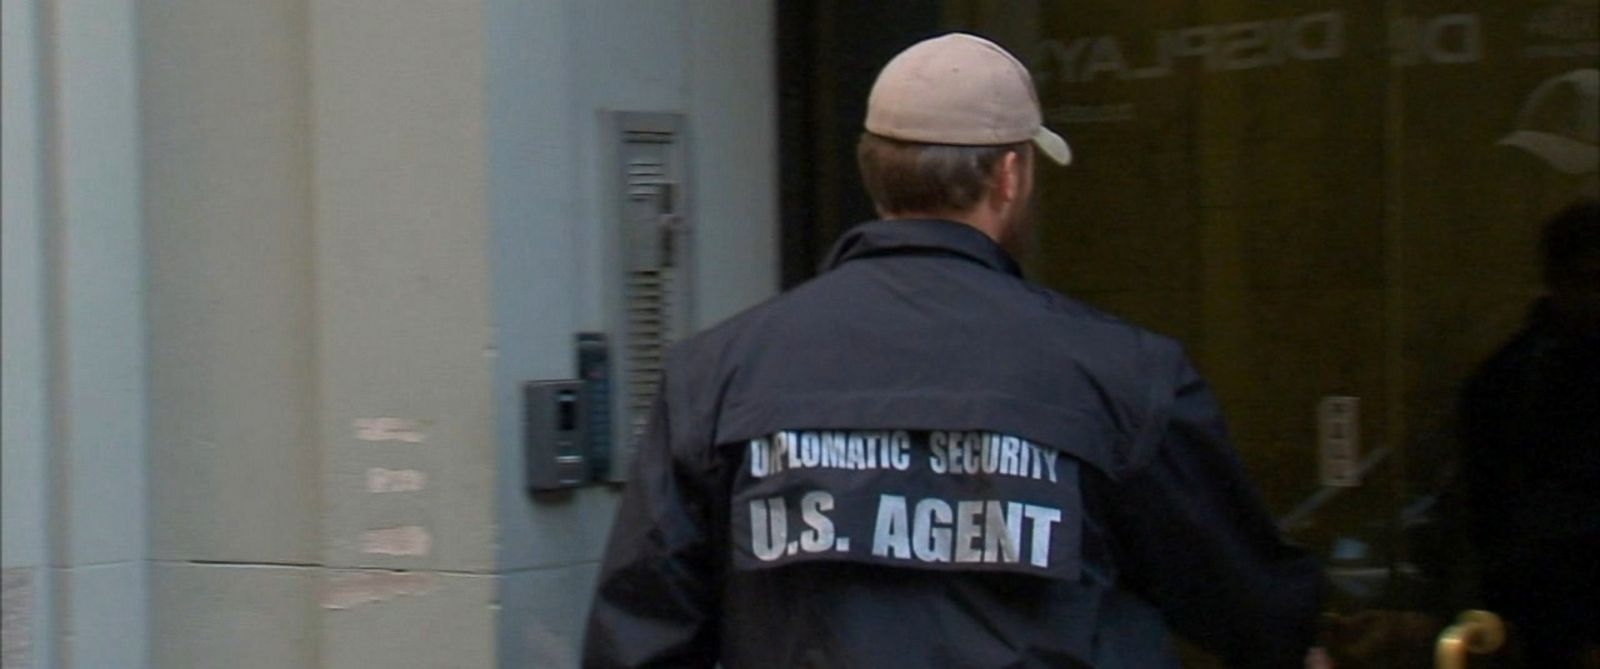 Federal agents conducted raids on the Micropower Careers Institute in March of 2014